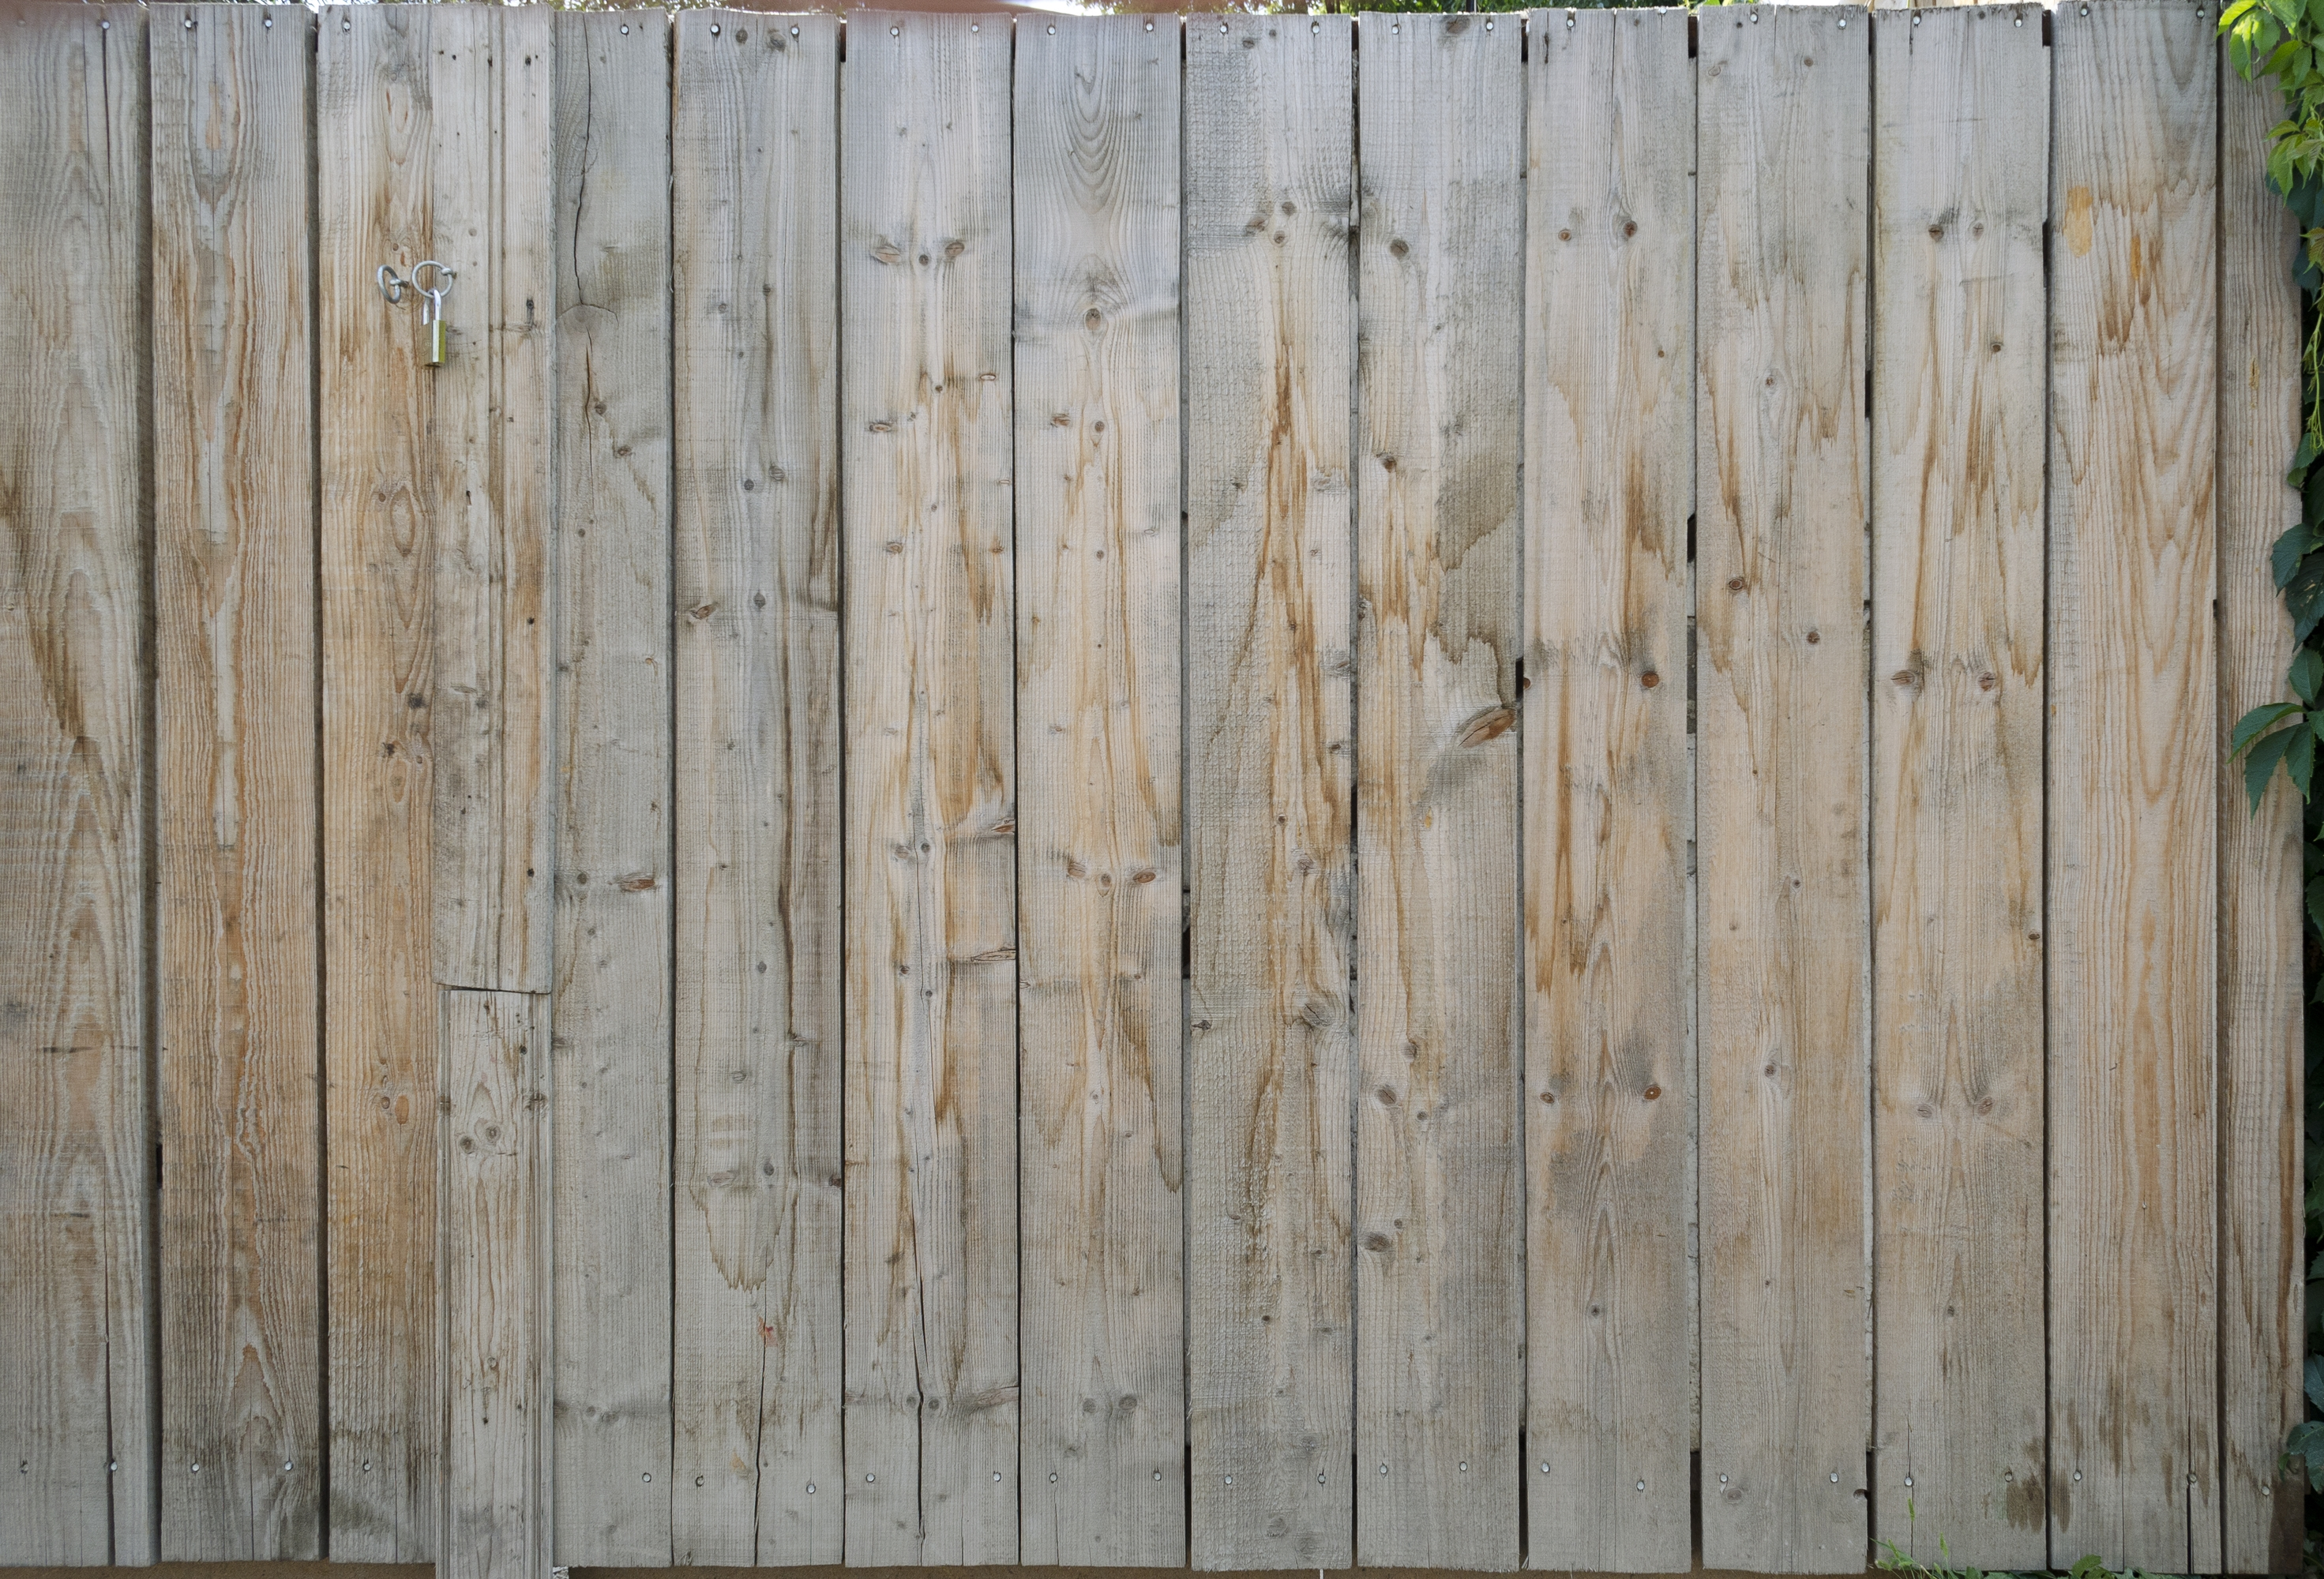 weathered wood plank download wallpaper that looks like weathered wood